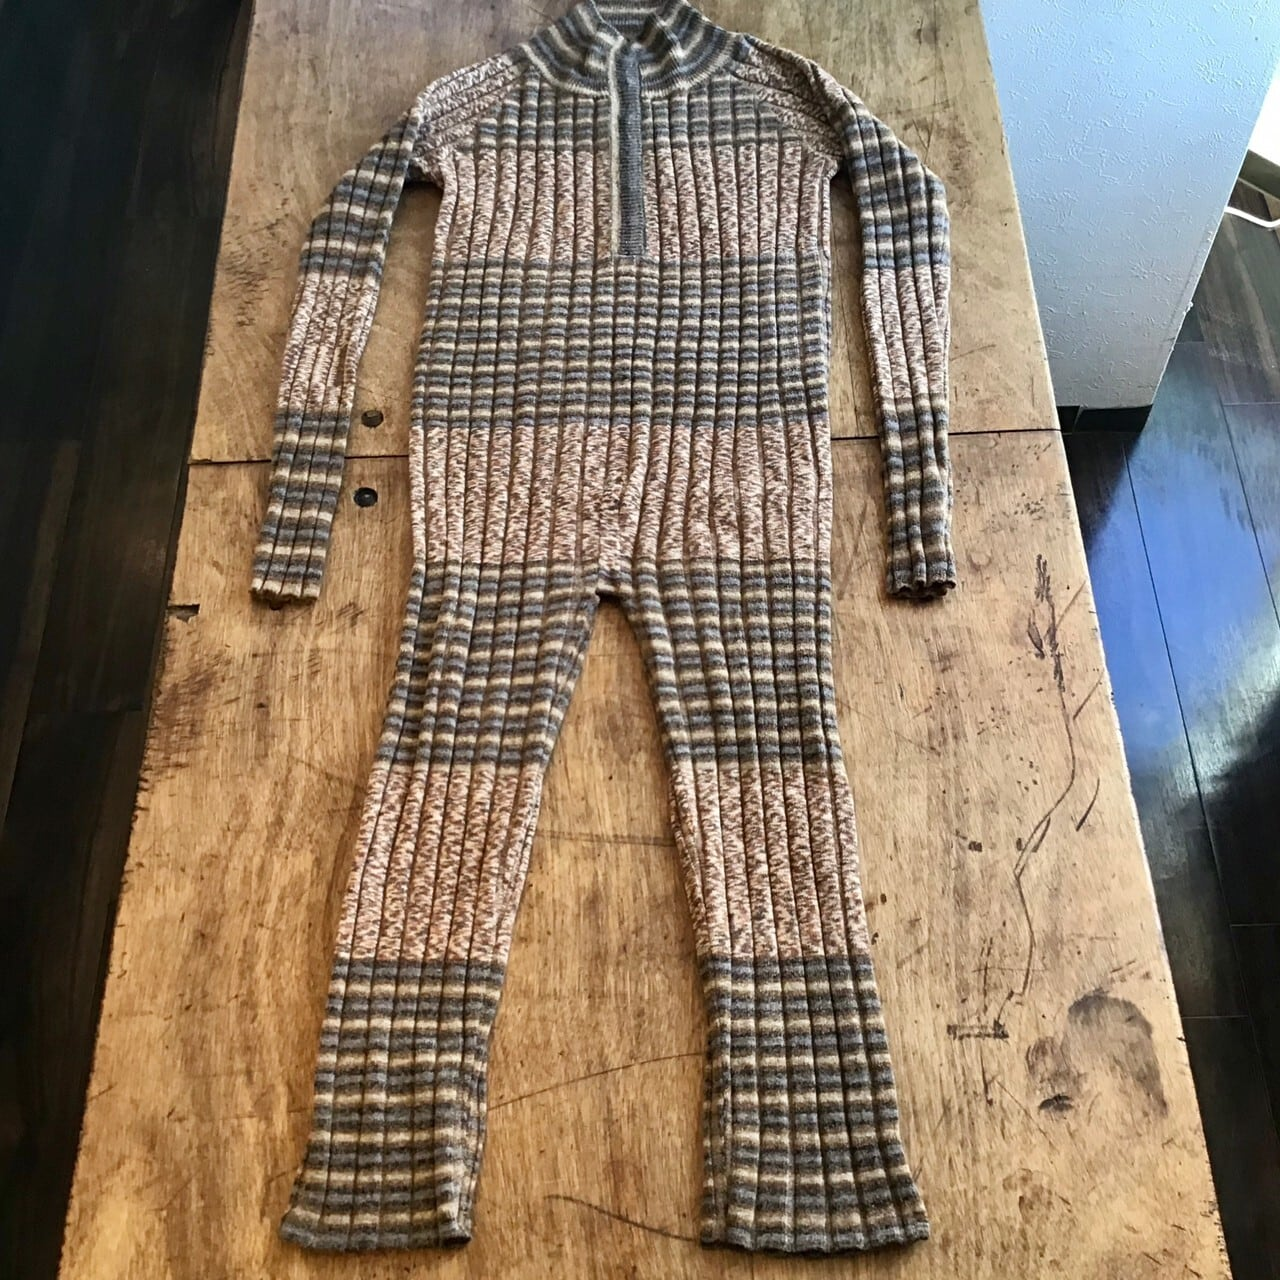 FUMIETANAKA F20A-11 knit rompers color brown/beige mix size 38